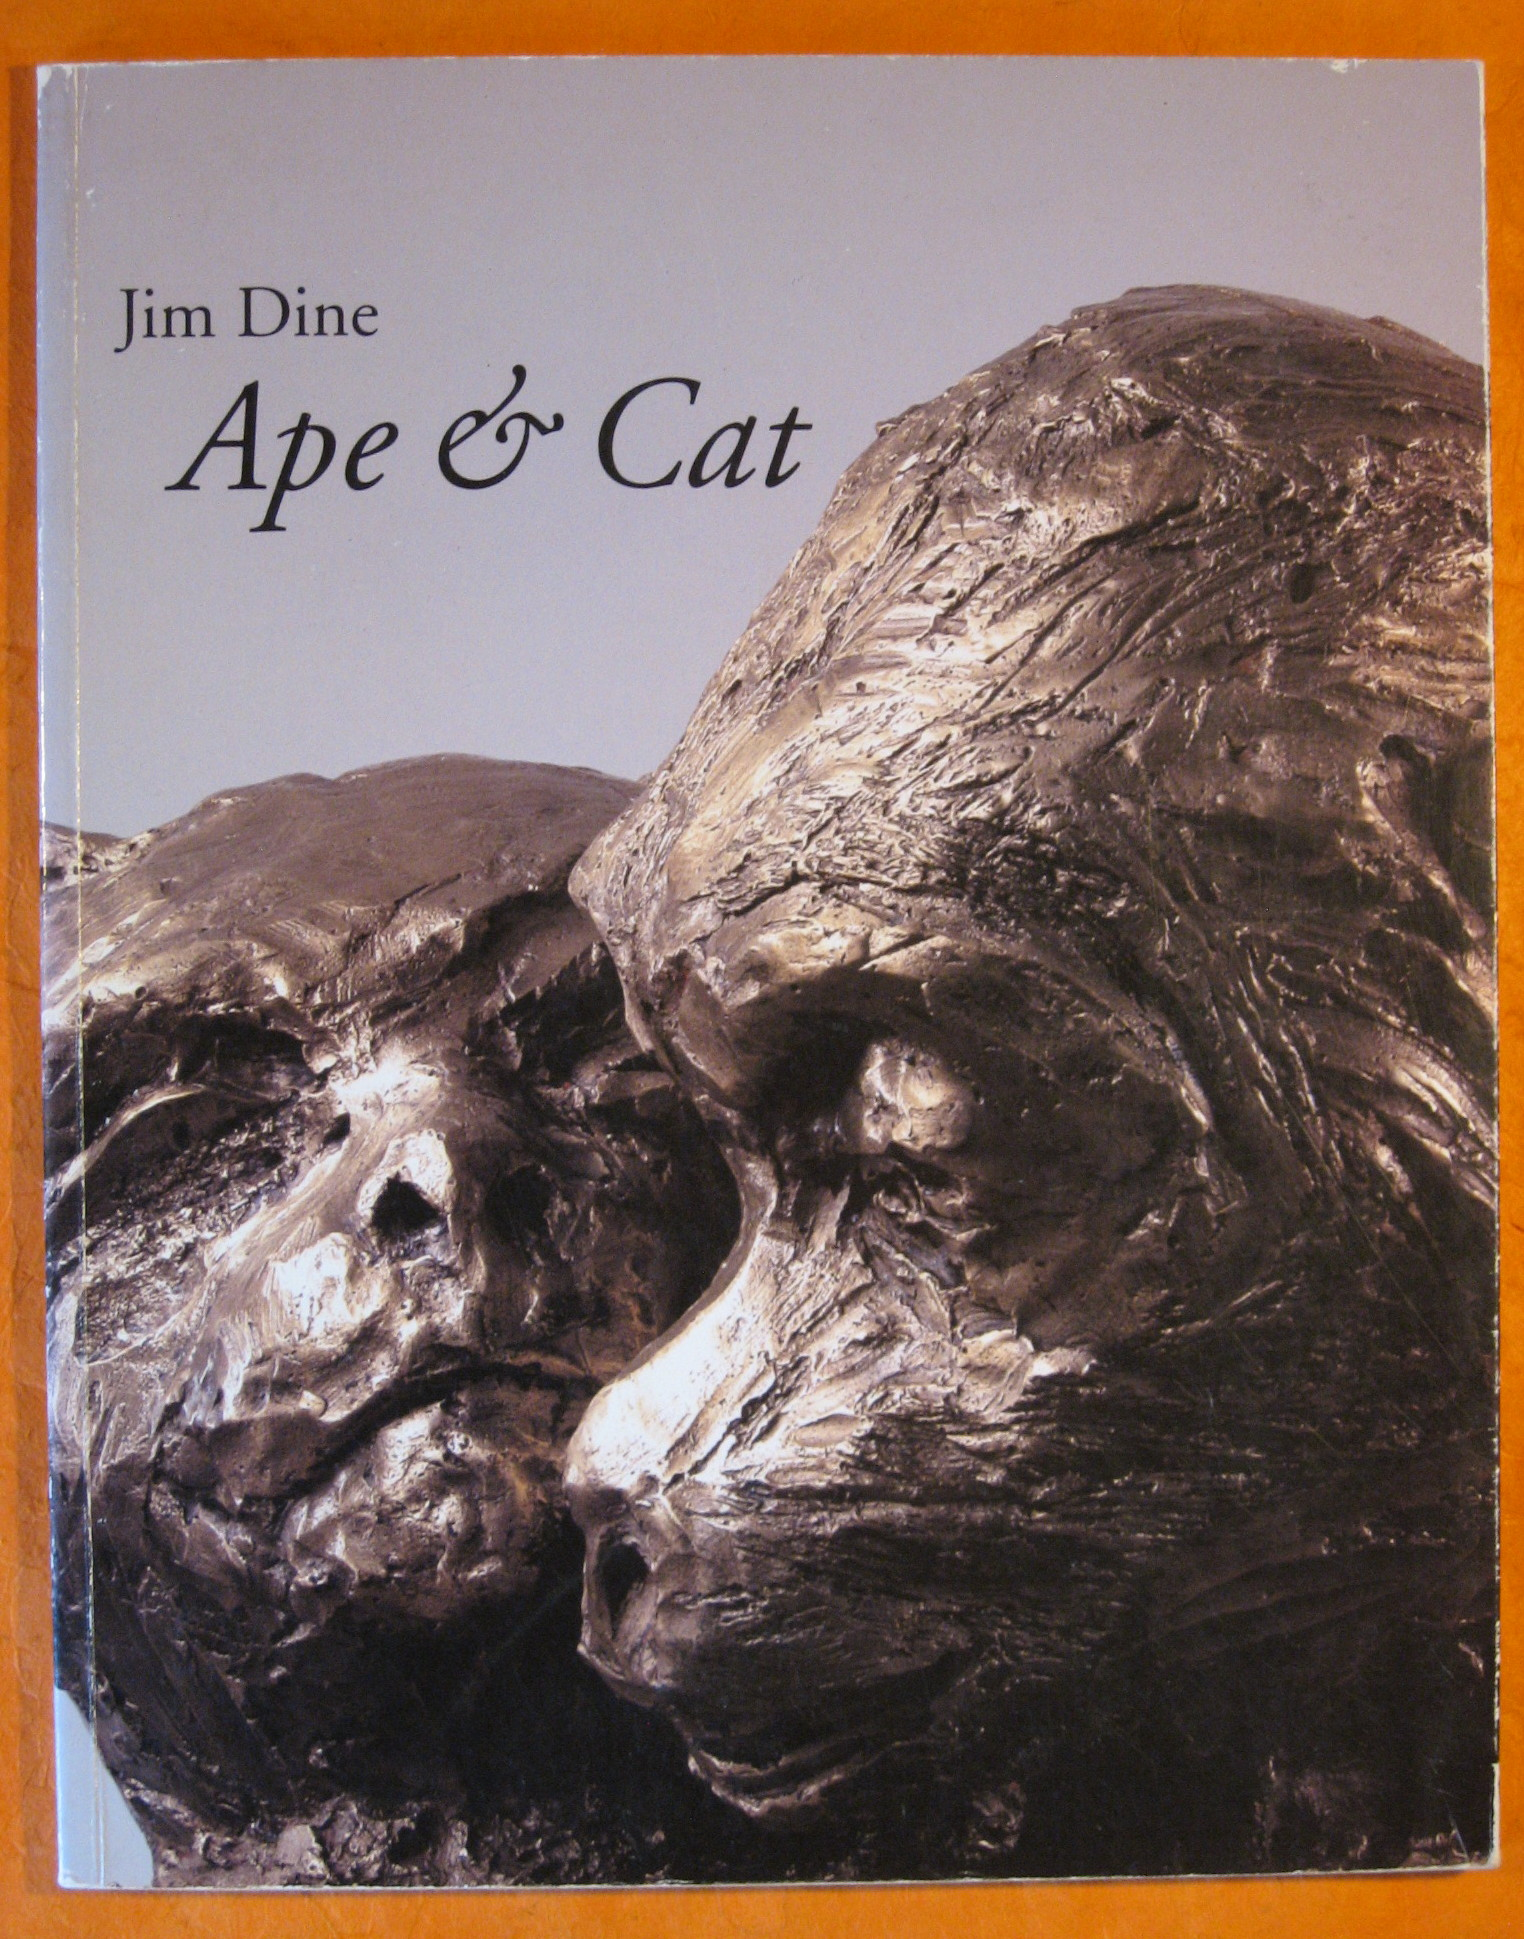 Ape & Cat:  October 22 to November 27, 1993, the Pace Gallery, Dine, Jim